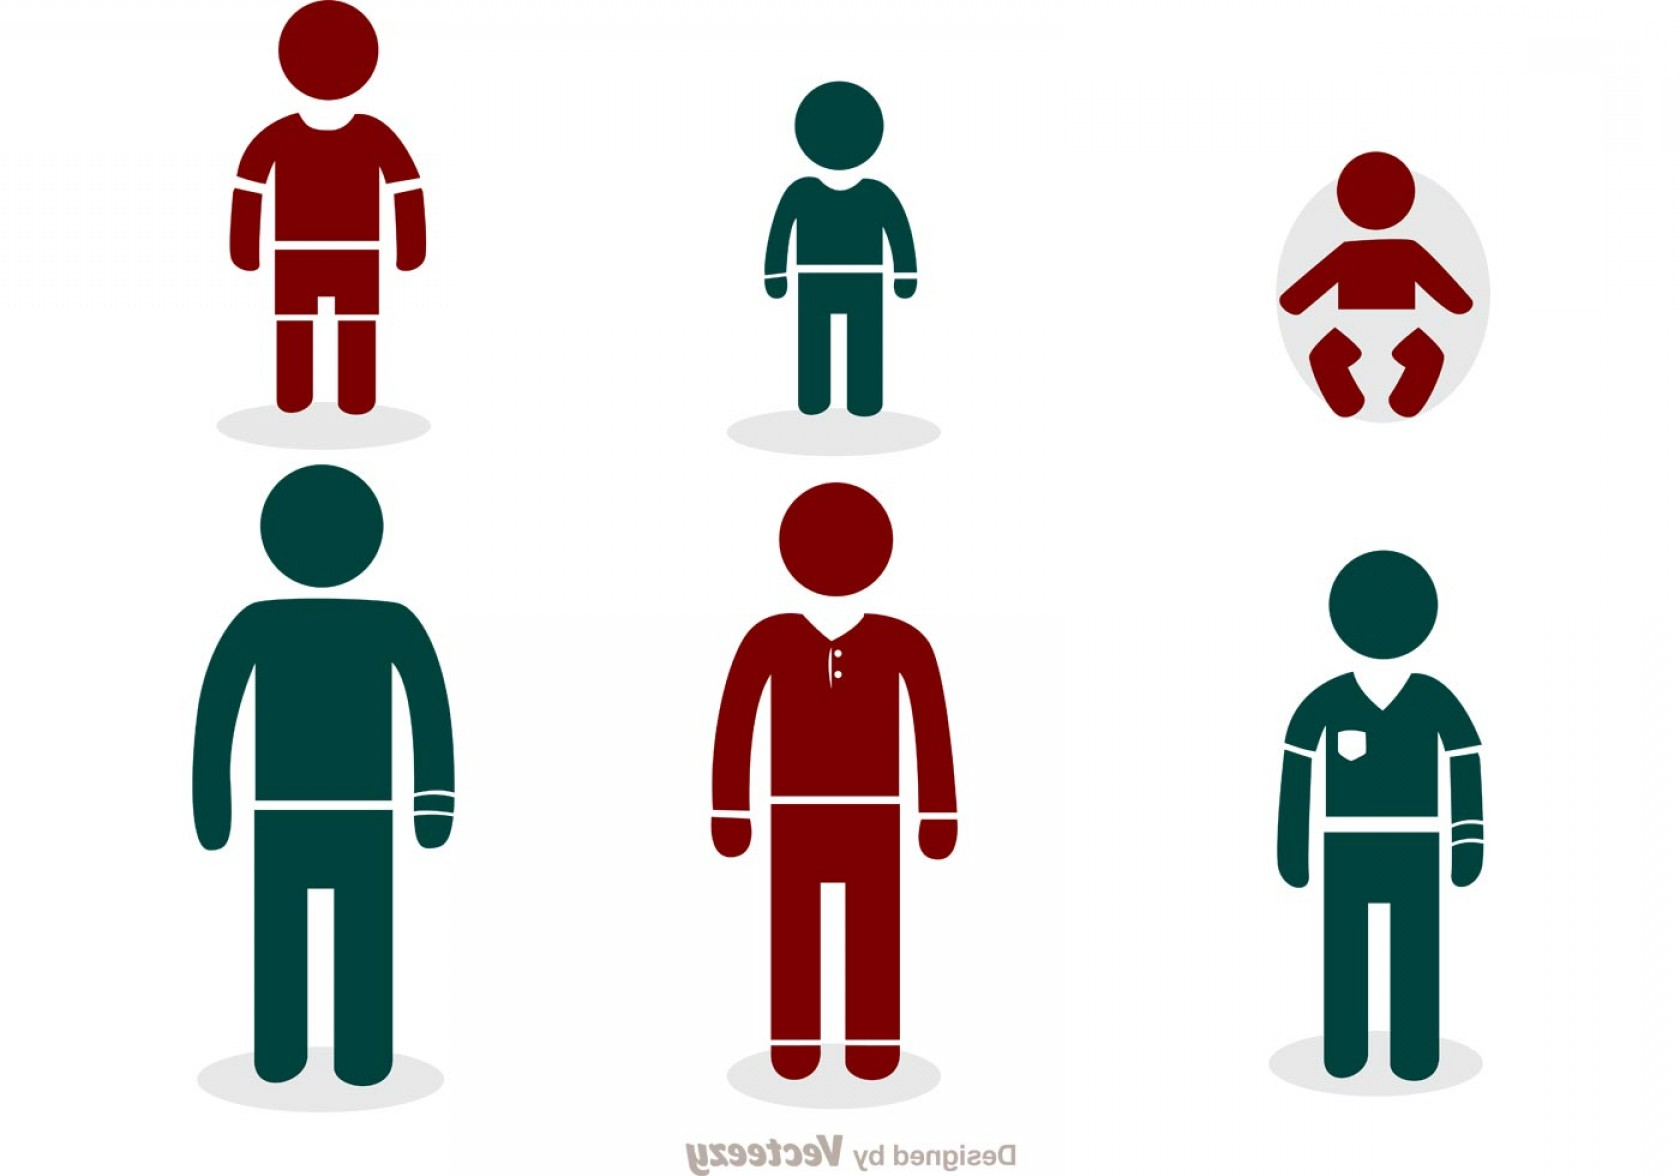 Growth Vector People: Growing Man Stick Figure Icons Vector Pack